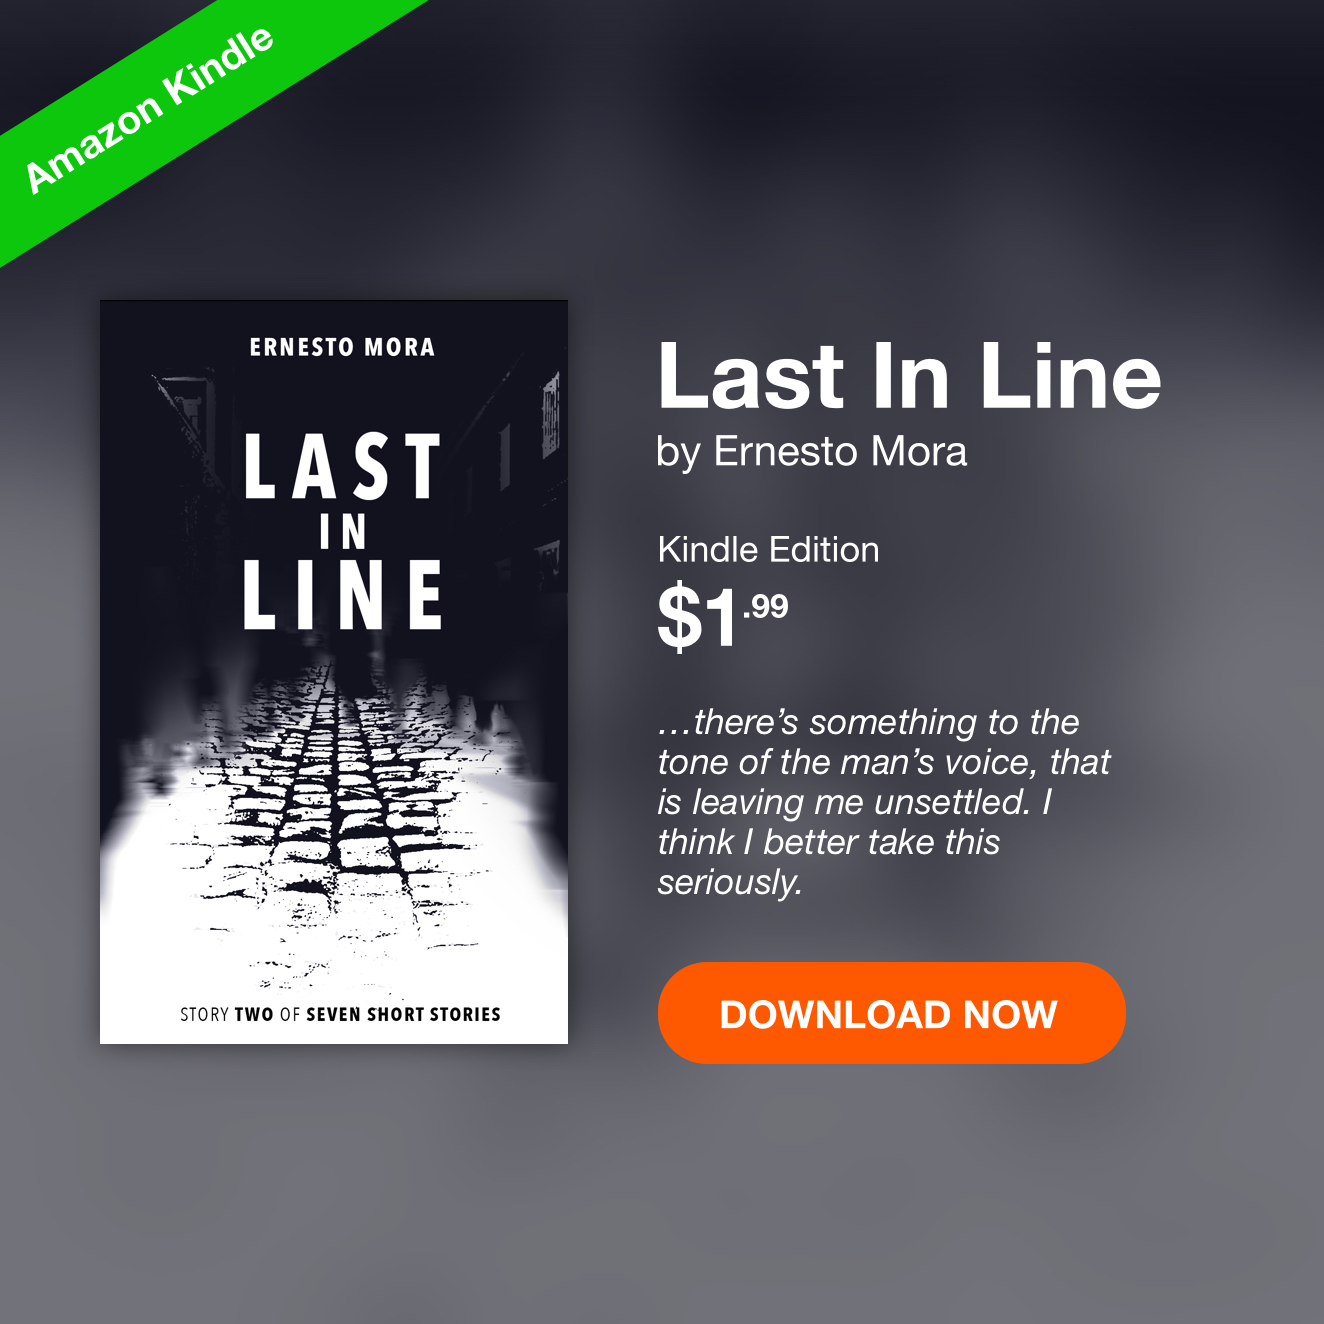 Last in Line by Ernesto Mora Download for Kindle